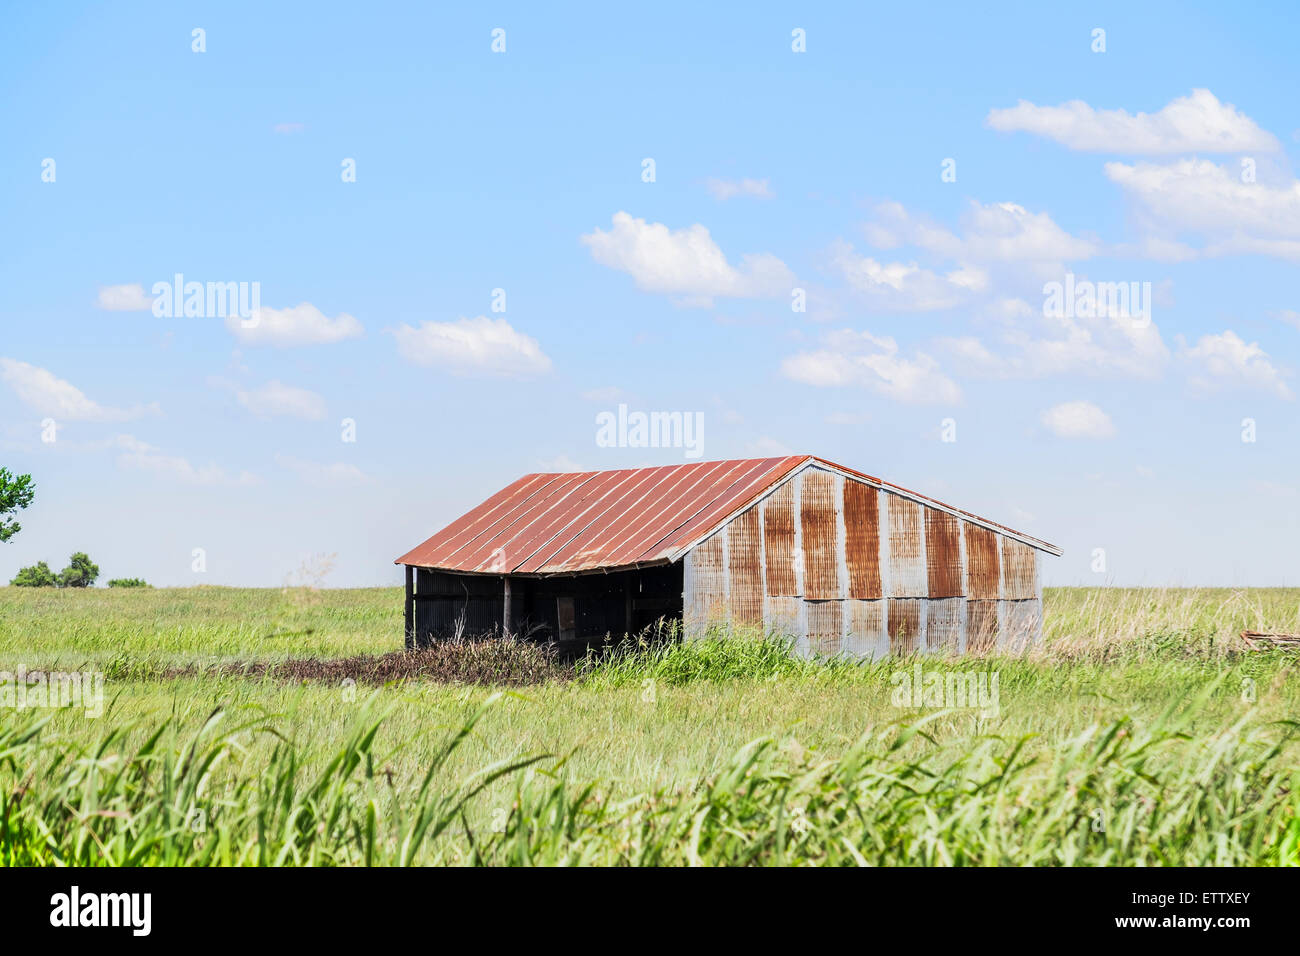 An old tin shed used for livestock or hay storage in rural Oklahoma. USA, U.S., U.S.A., United States - Stock Image